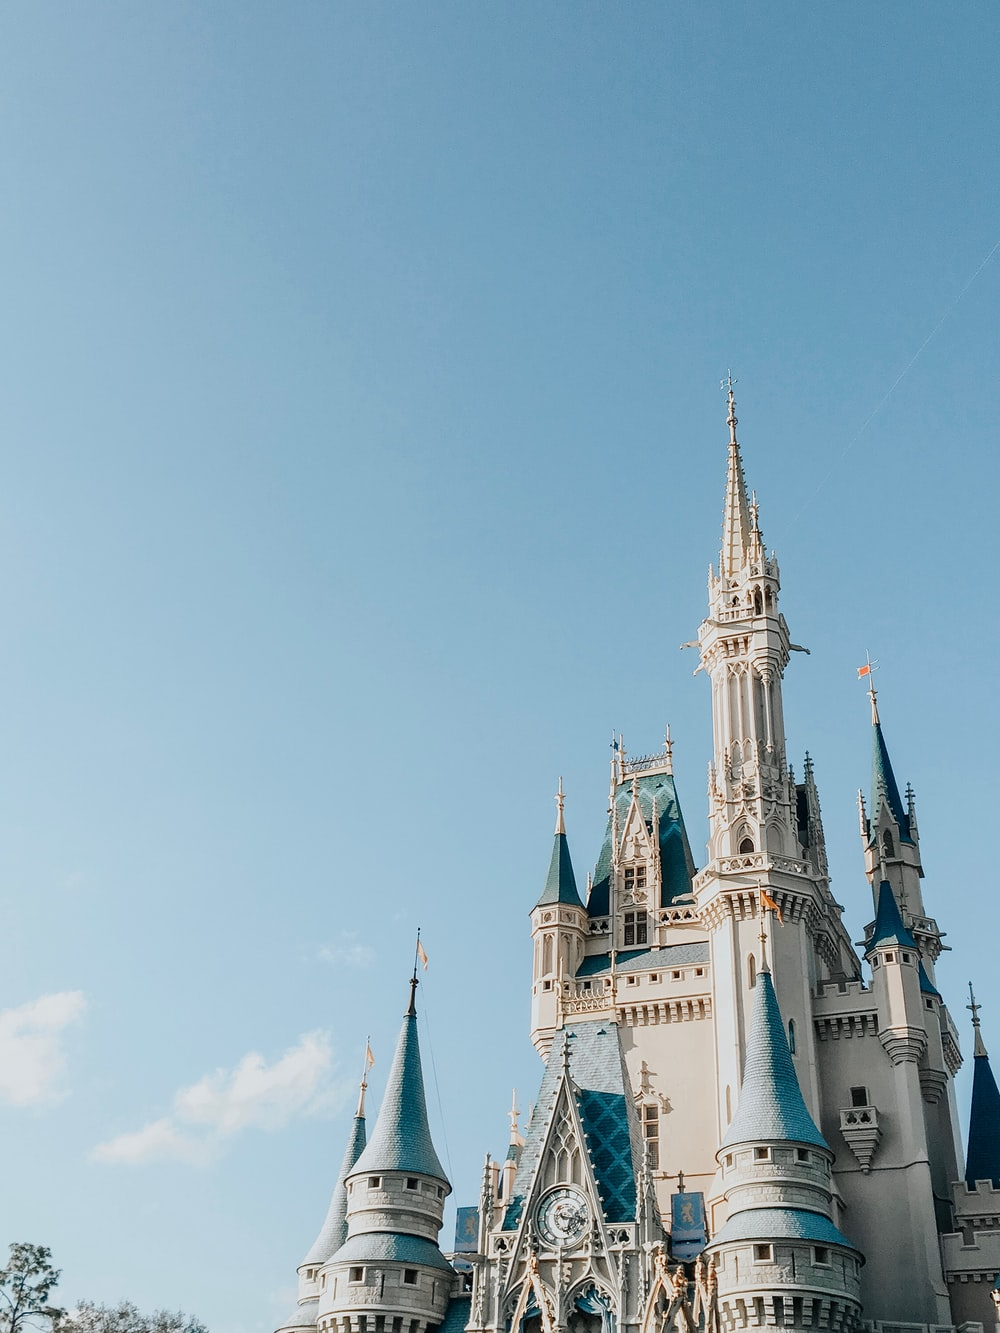 Cinderella's castle during clear blue sky